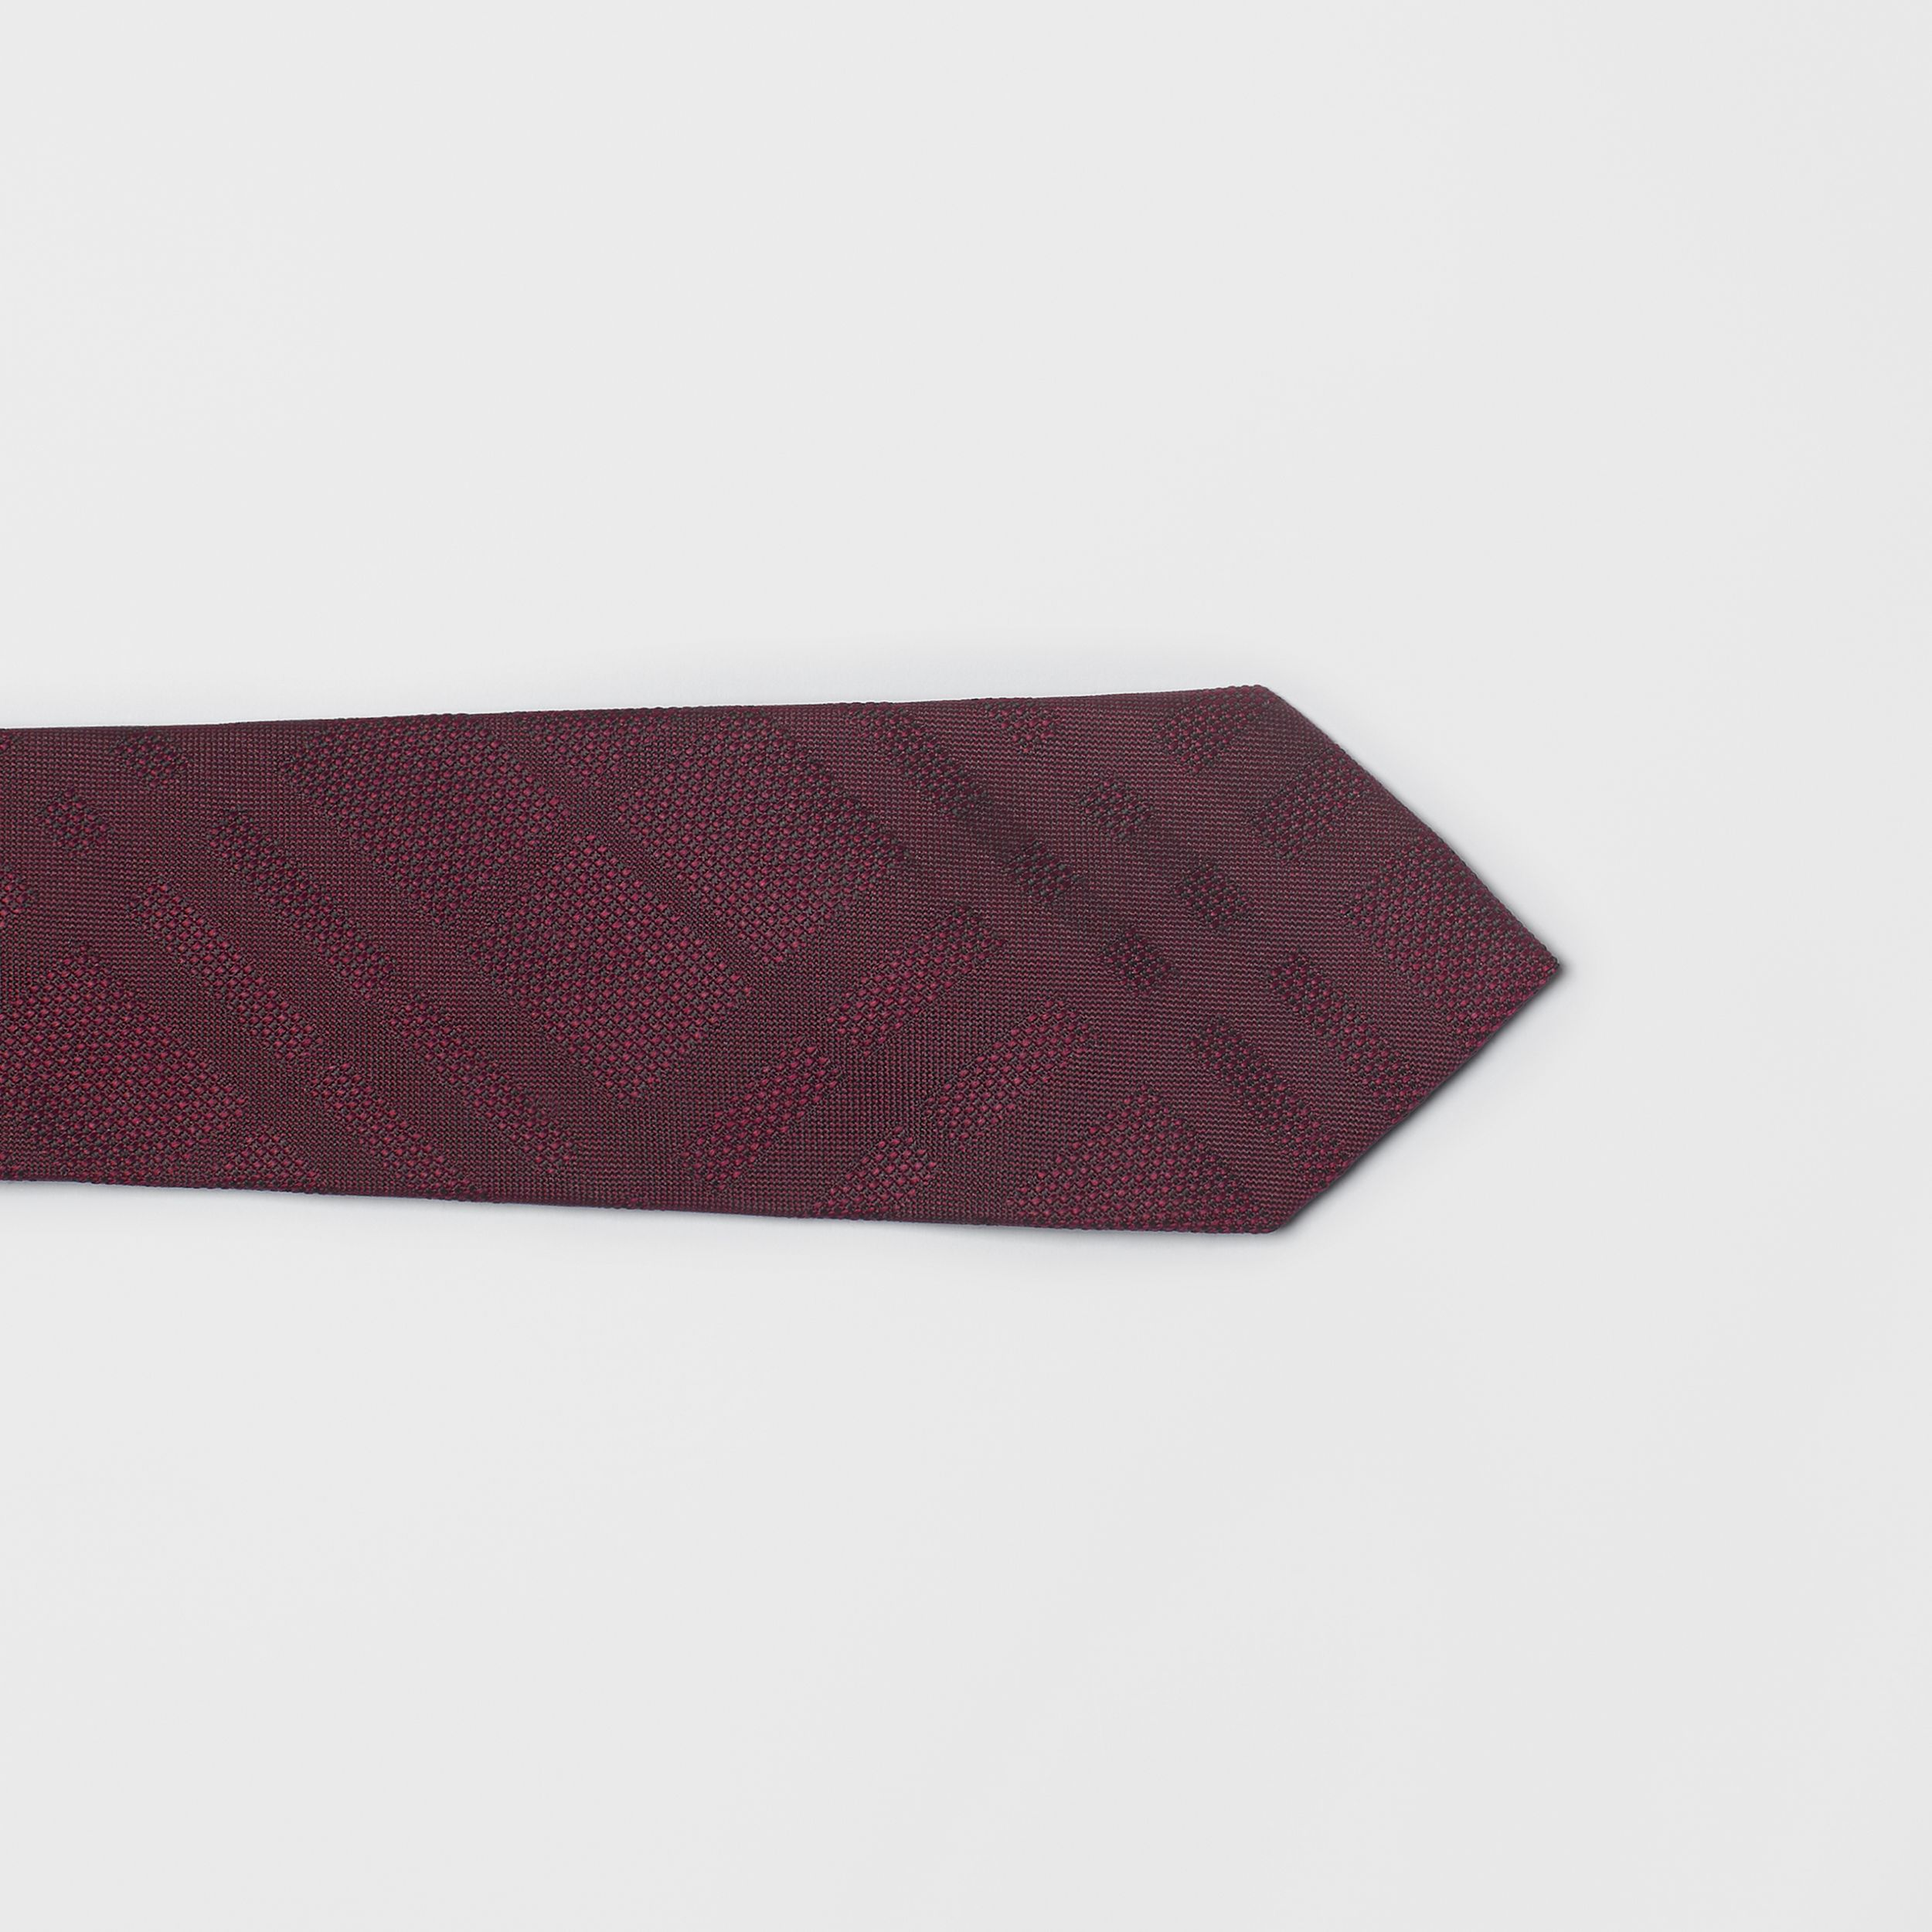 Classic Cut Check Silk Jacquard Tie in Deep Claret - Men | Burberry - 2